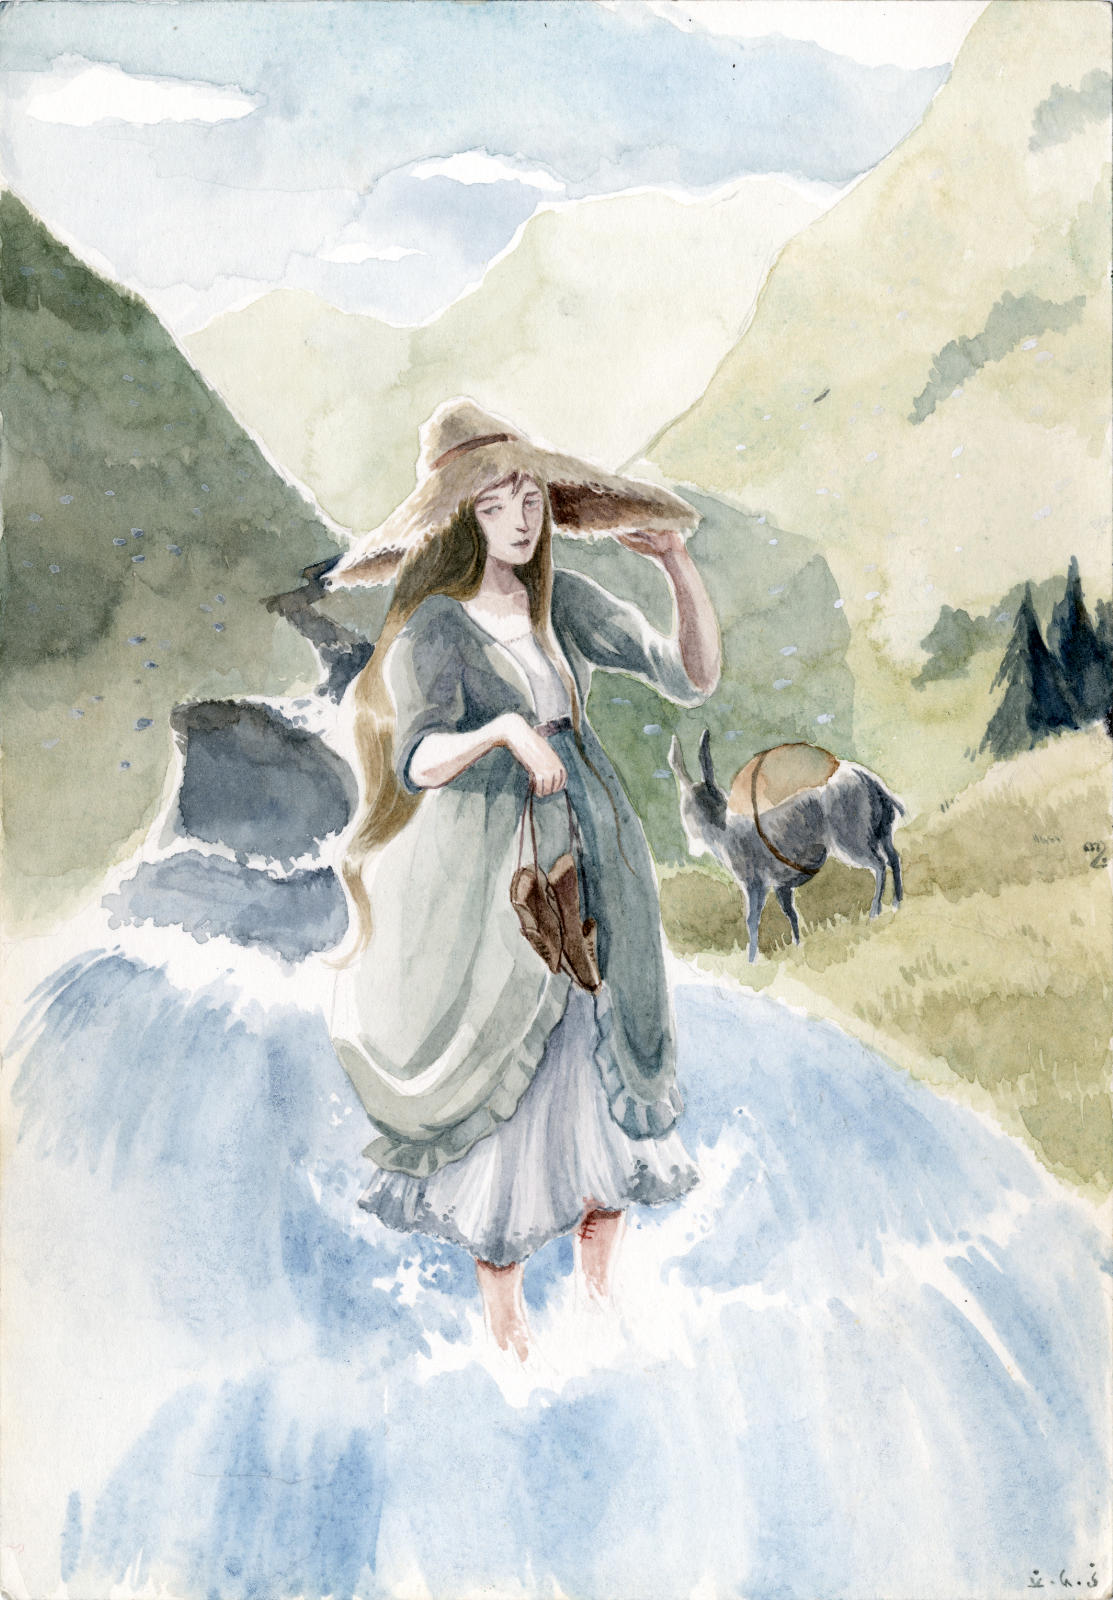 A travelling girl with a large straw hat is standing in the midst of a mountain torrent holding her shoes, her donkey with her belongings already on the other side.